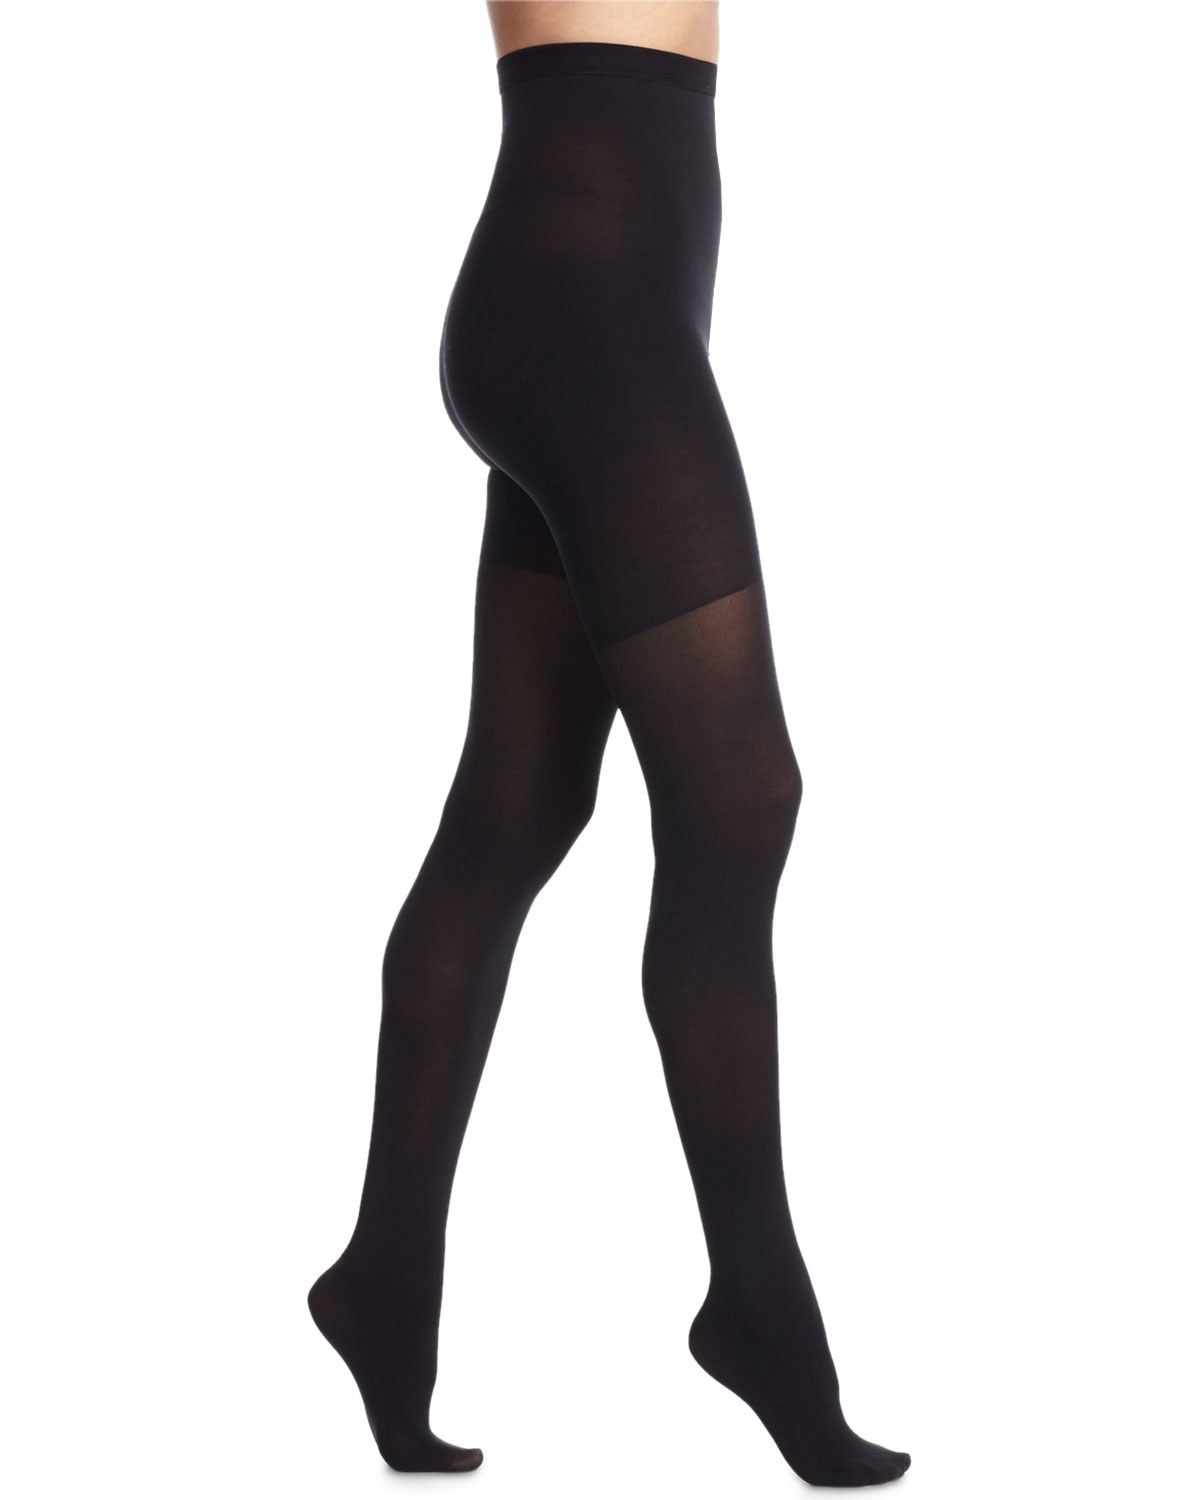 spanx high waisted luxe sheer tights in black very black. Black Bedroom Furniture Sets. Home Design Ideas